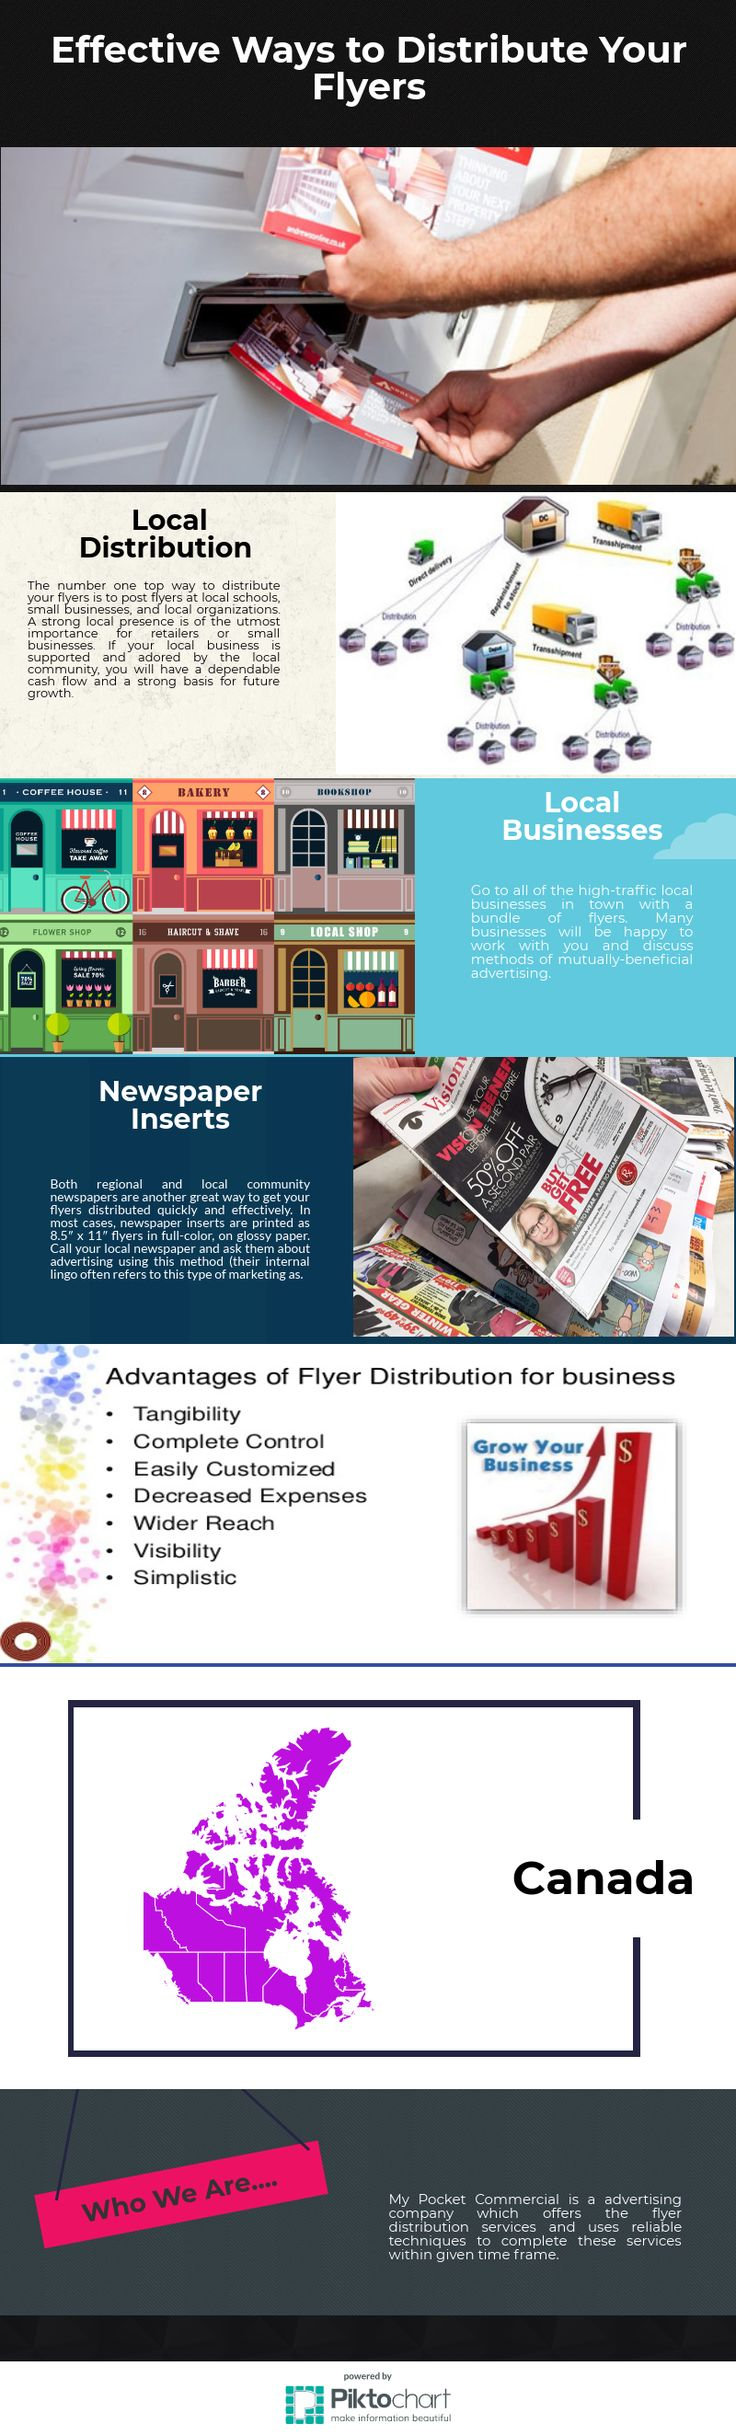 Here we have discussed about the tips to distribute your flyers and its ways which will provide the help to promote your business and increase the customer attention.